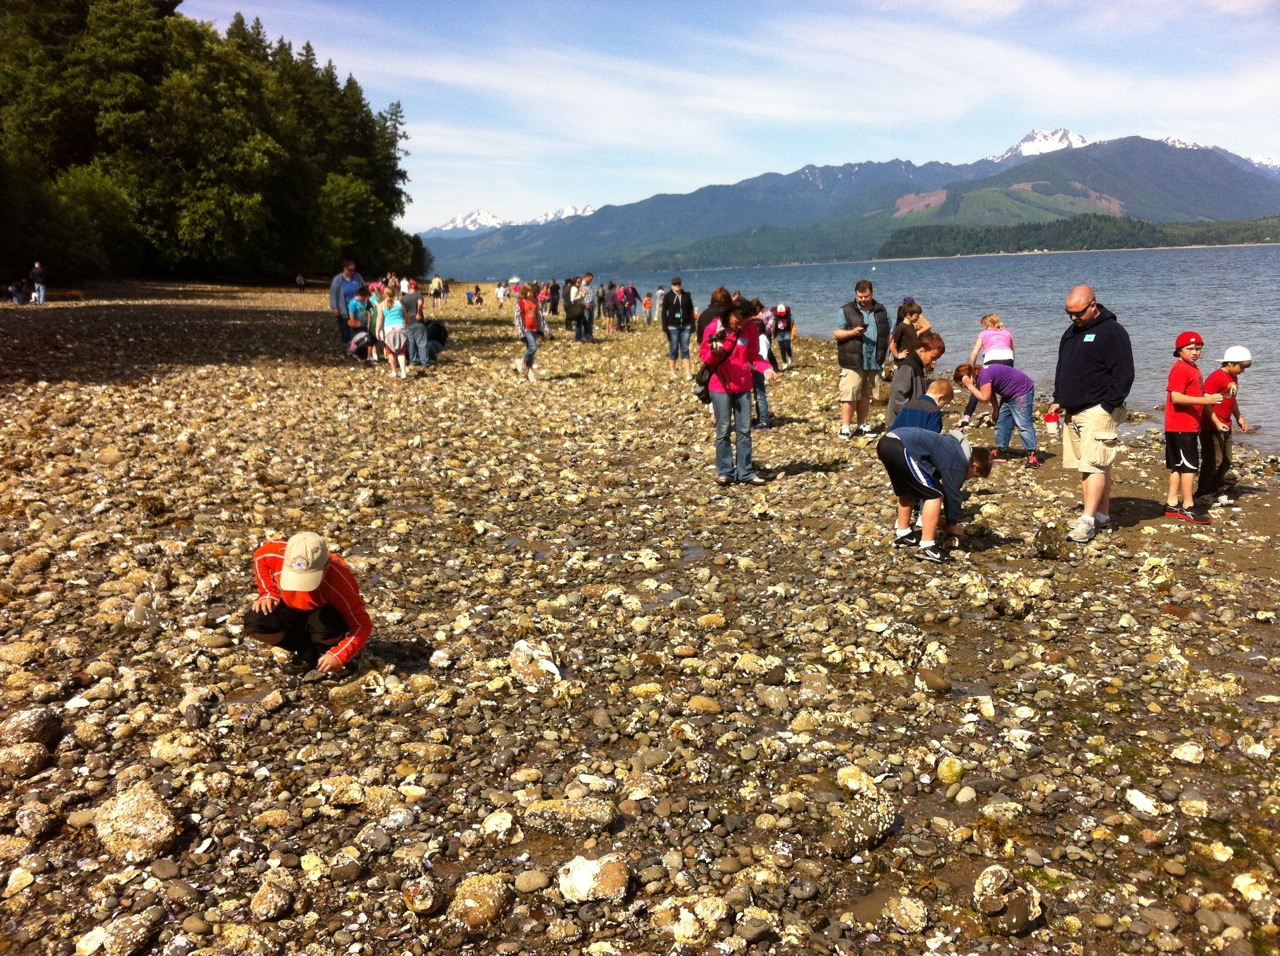 Students and families at Scenic Beach State Park. Photo: Jeff Adams